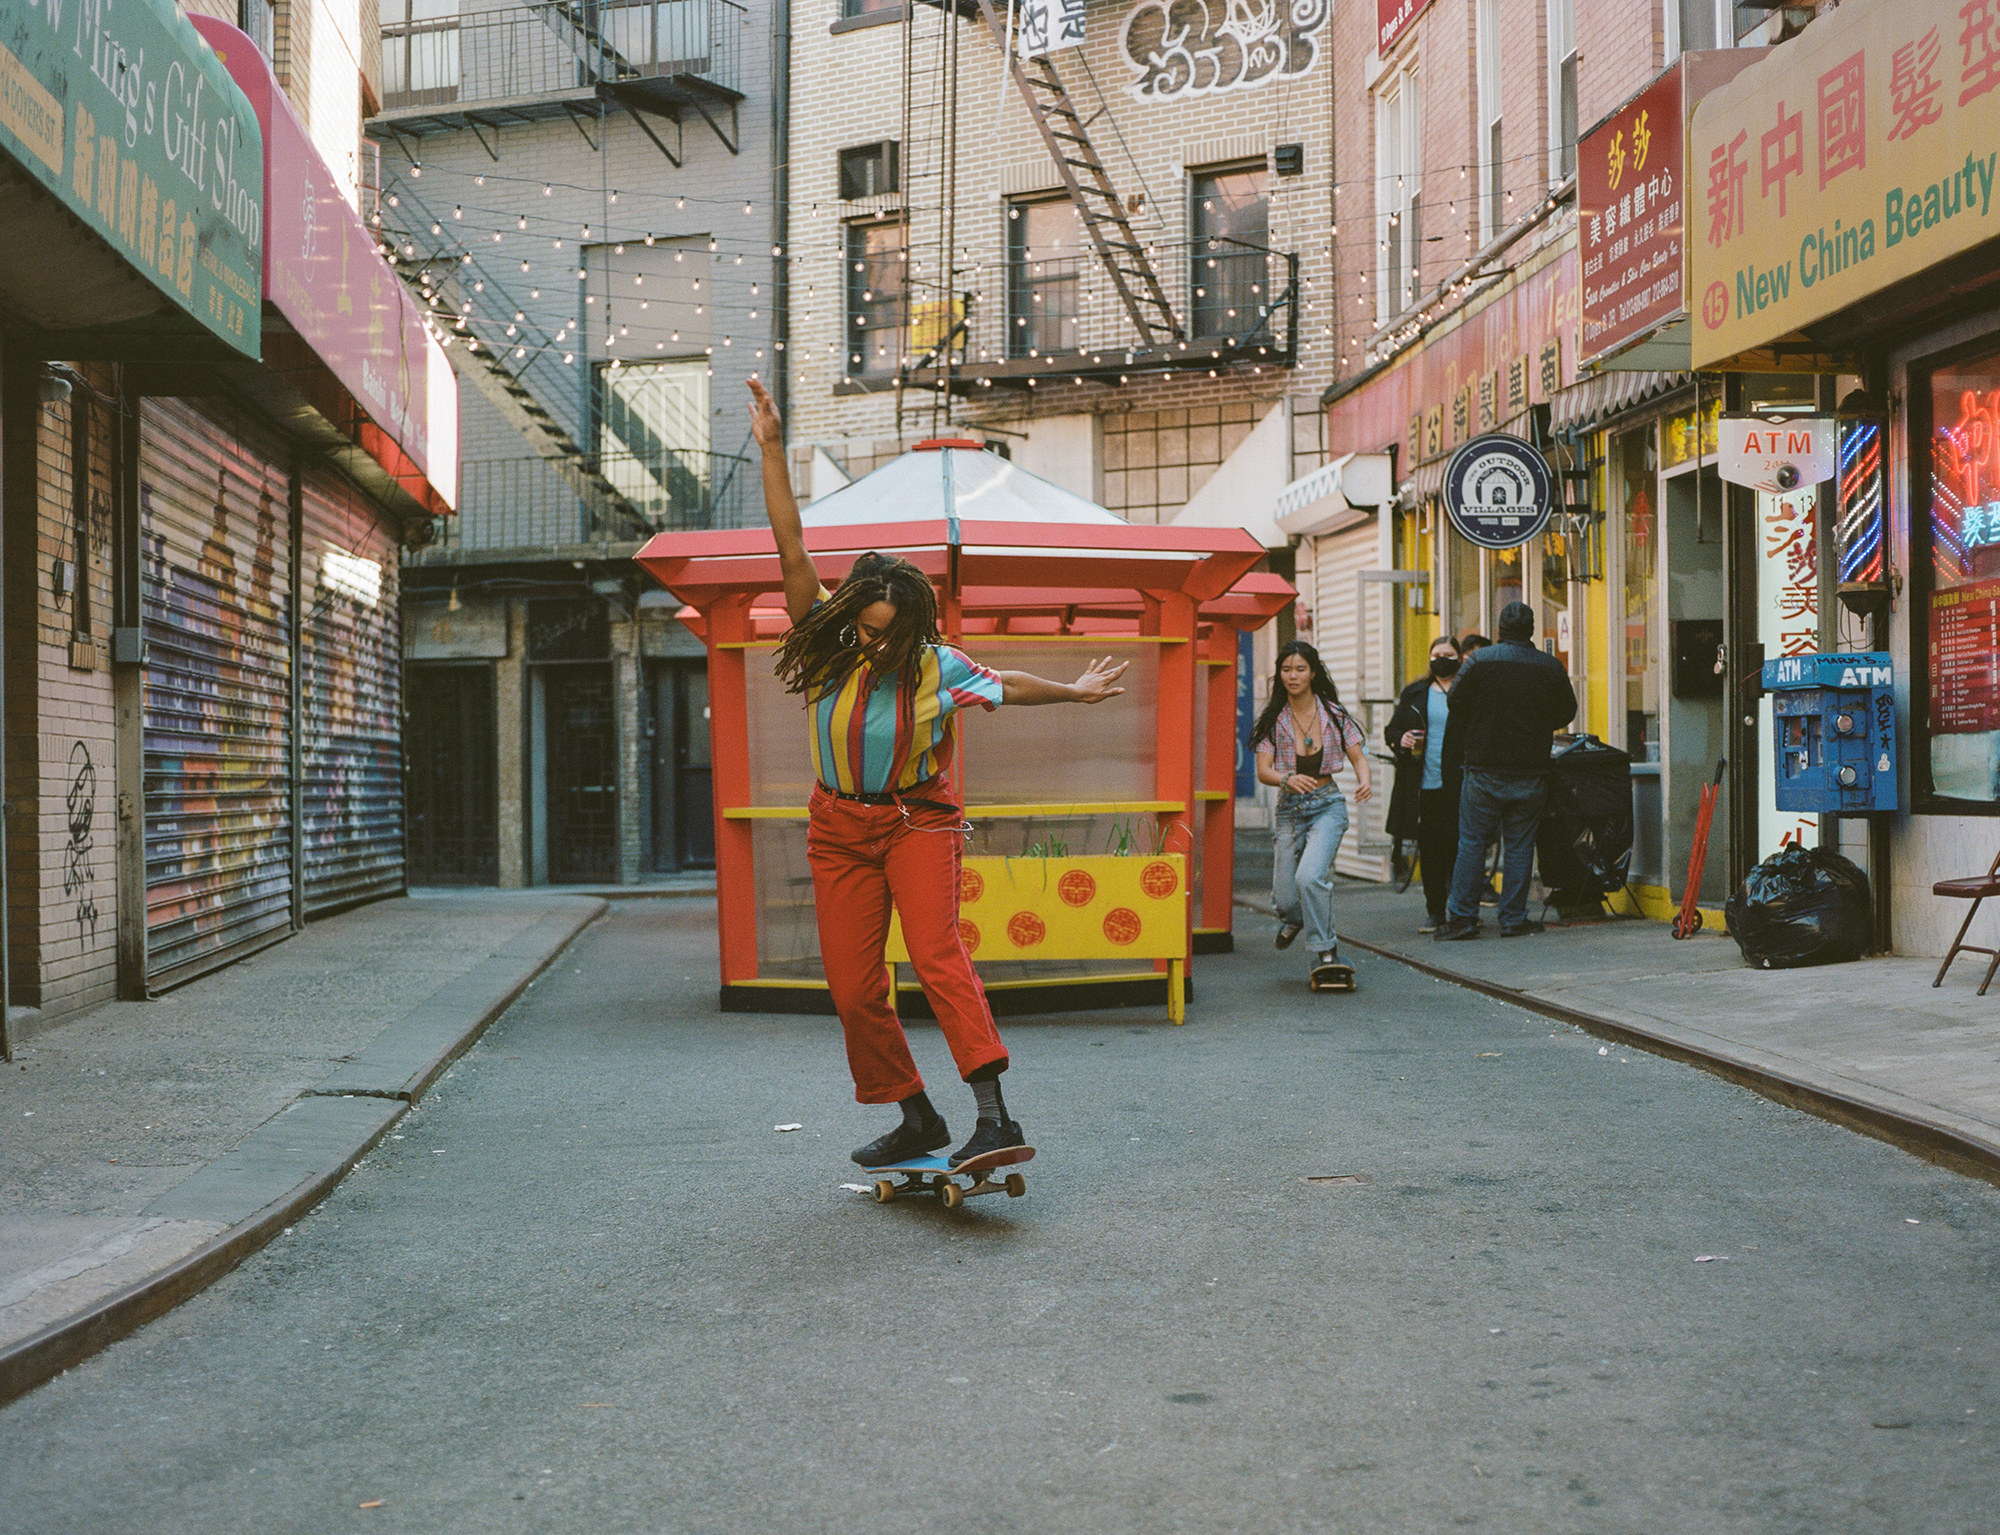 A woman doing a trick on a skateboard on the street